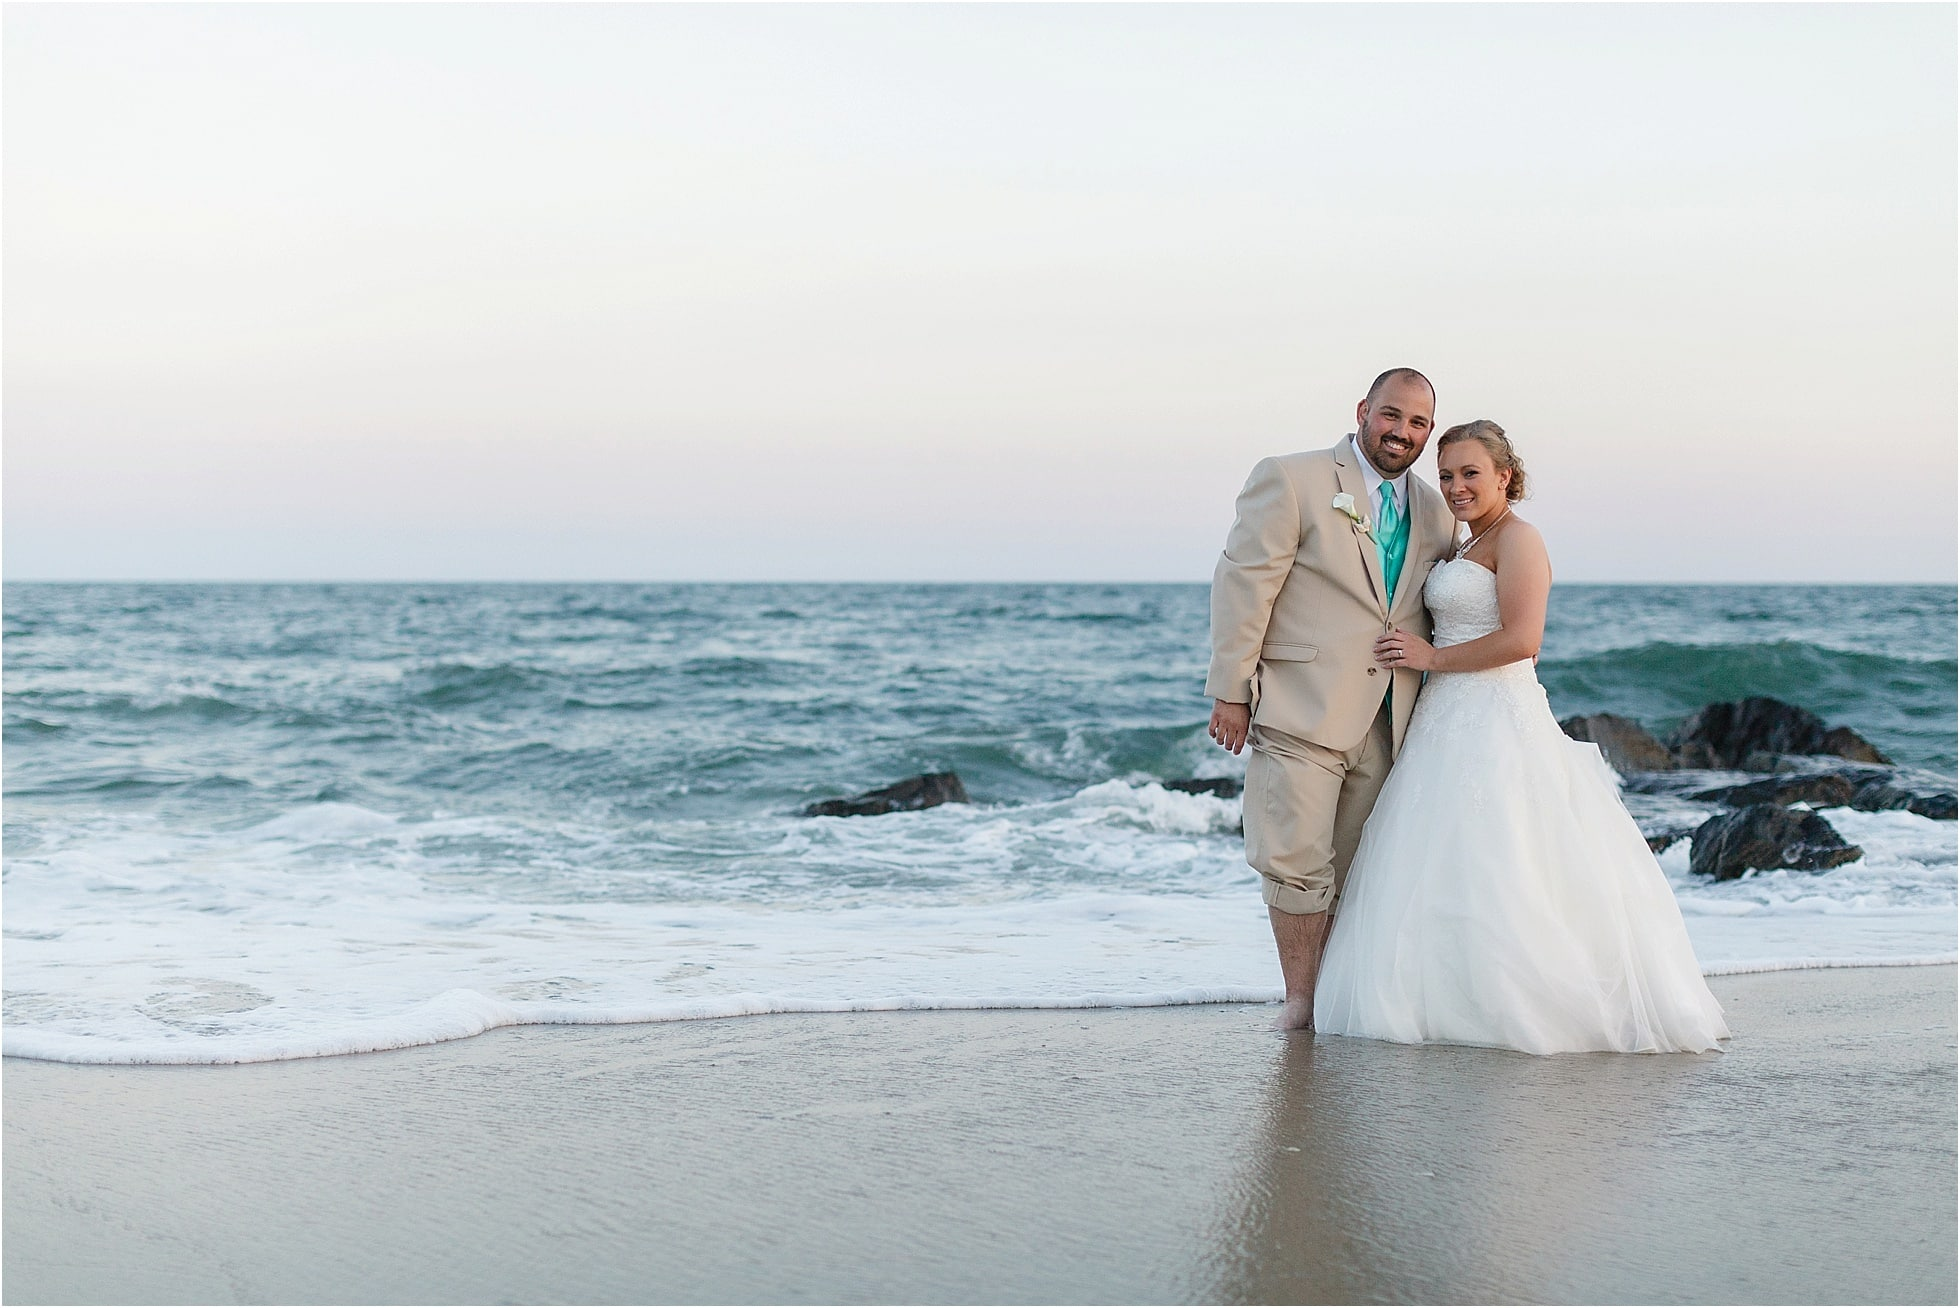 Cape May Beach Wedding Photos